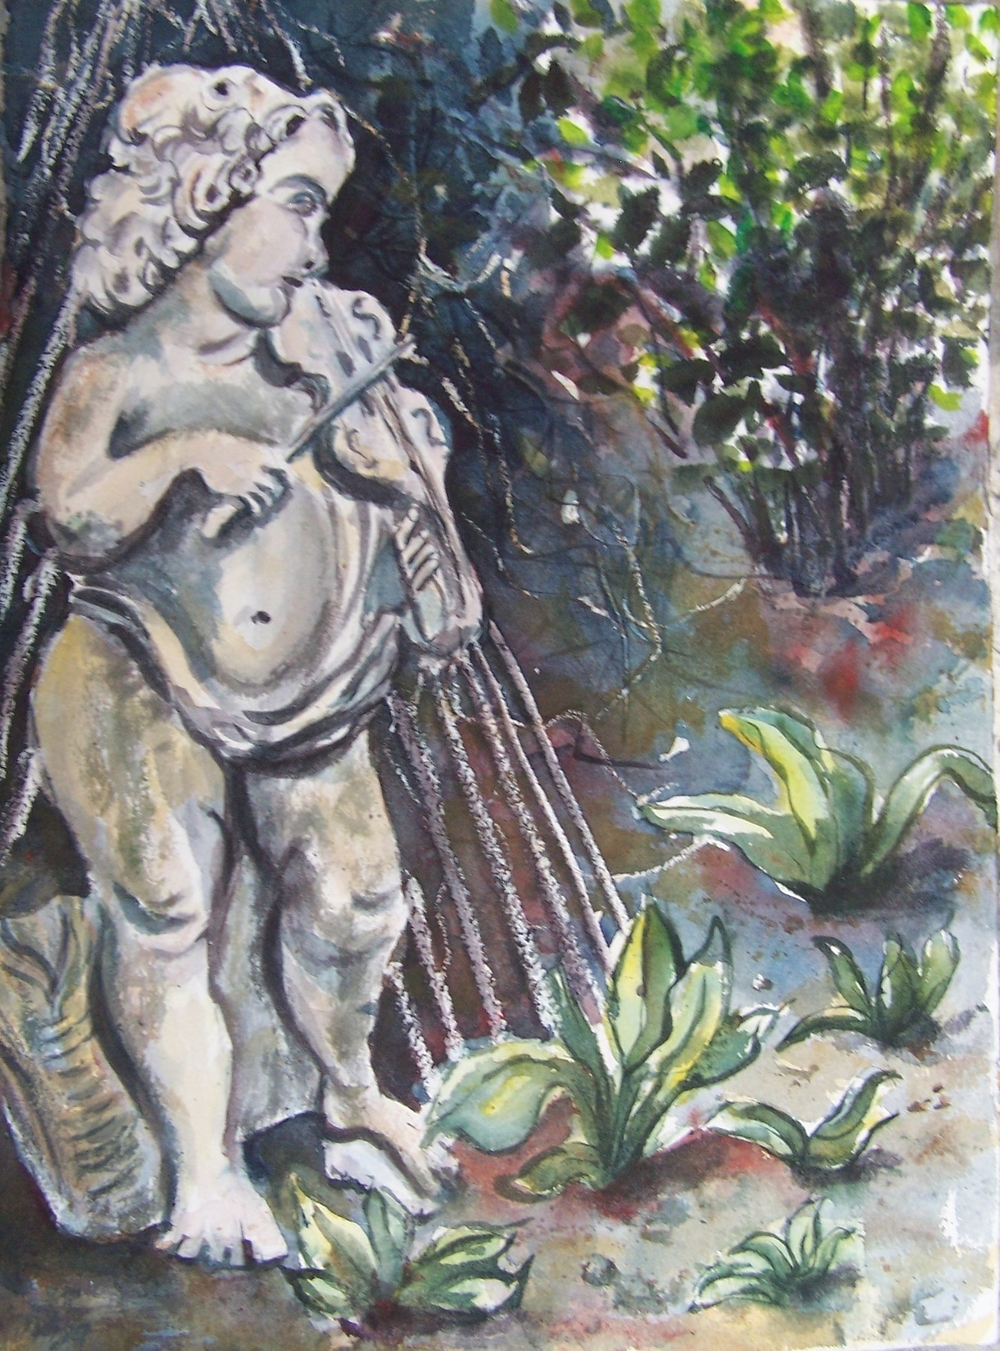 Garden Statue No. 2 - © Donna Lovely